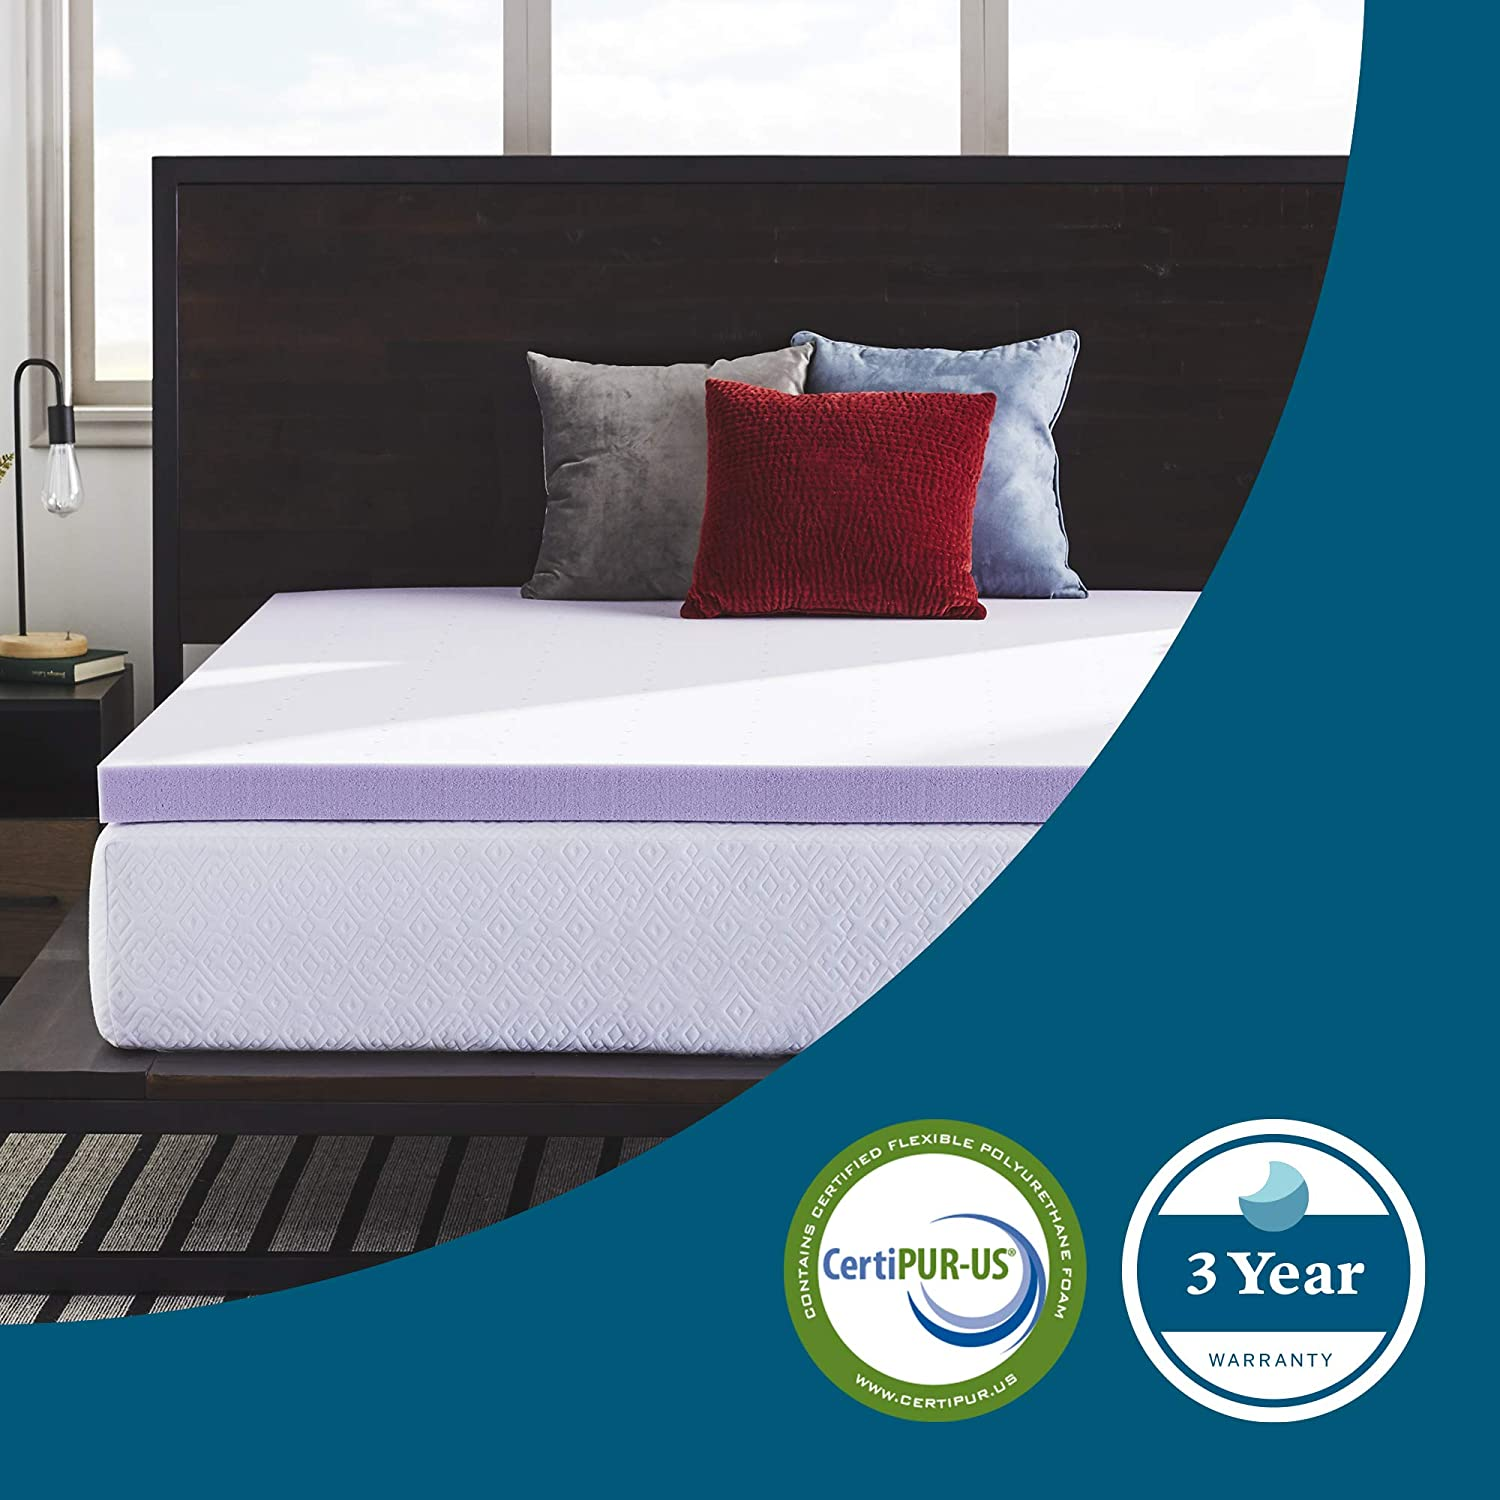 LUCID 3 Inch Lavender Infused Memory Foam Mattress Topper - Ventilated Design - Full Size: Home & Kitchen